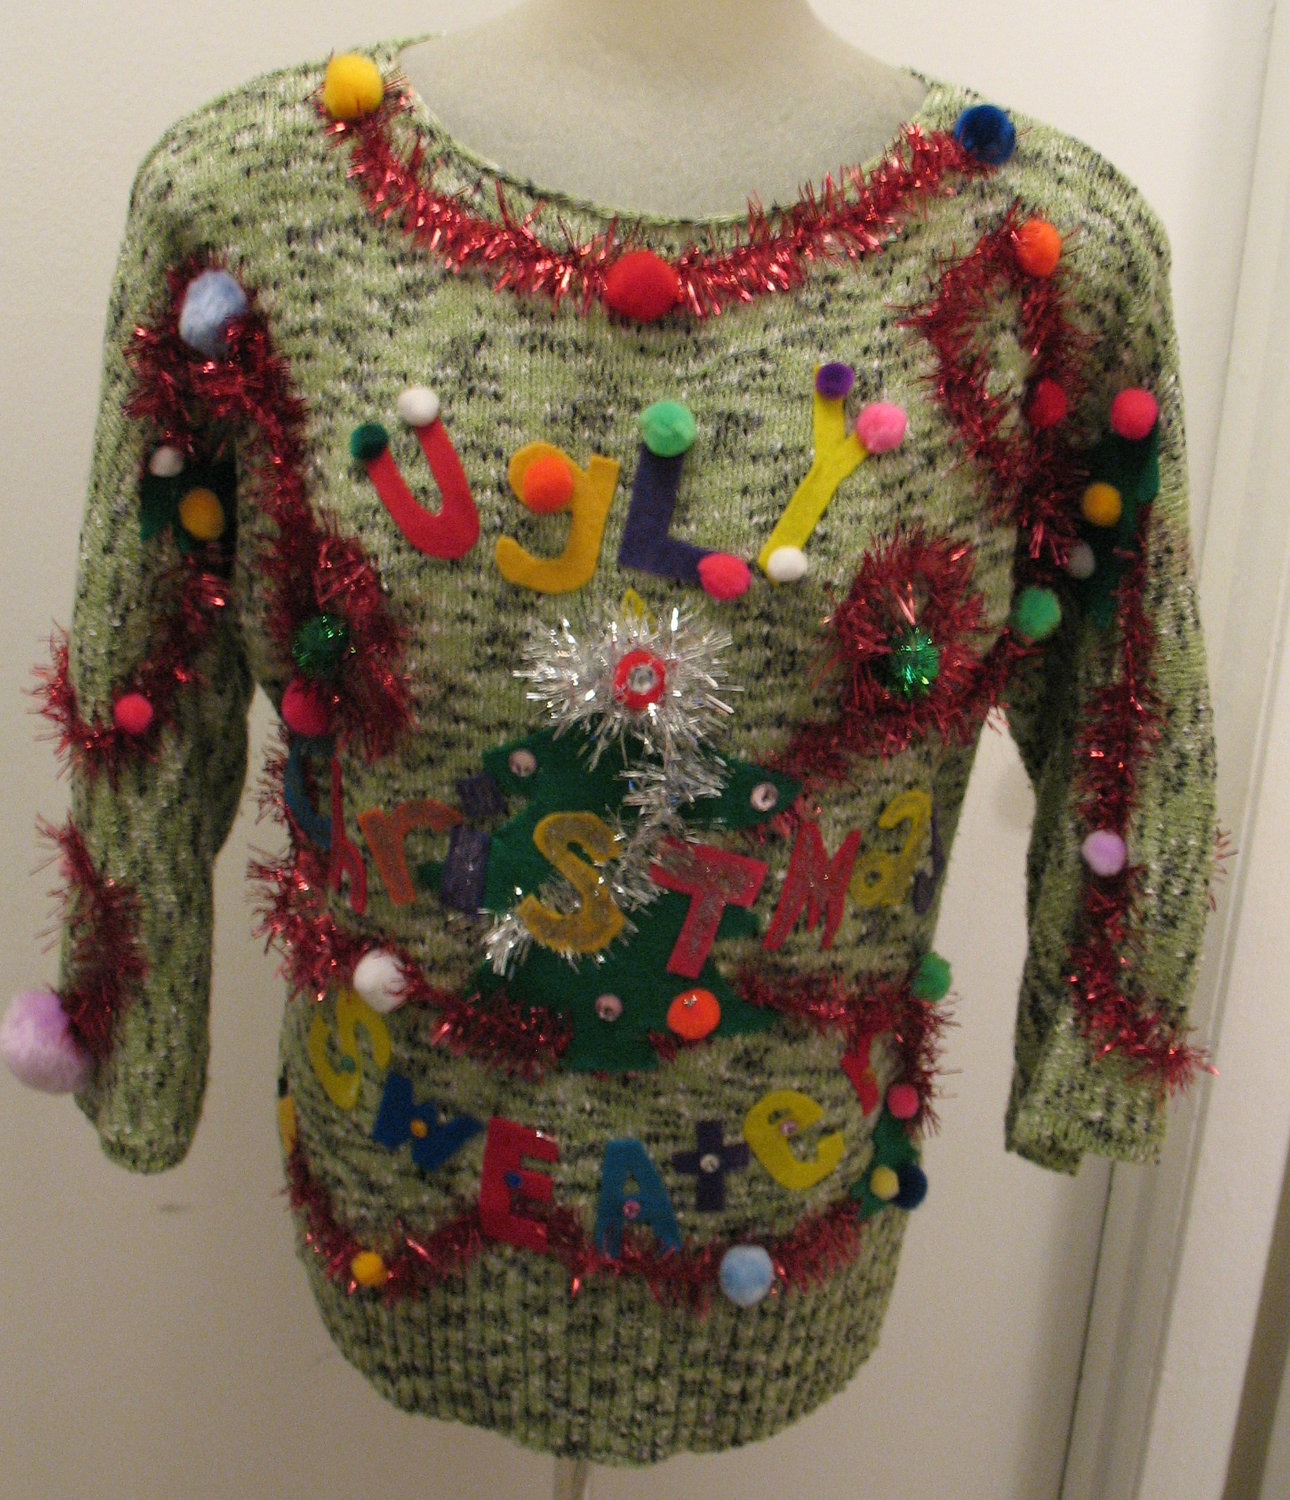 http://llwproductions.files.wordpress.com/2011/12/ugly-christmas-sweater-13-says-ugly-christmas-sweater.jpg